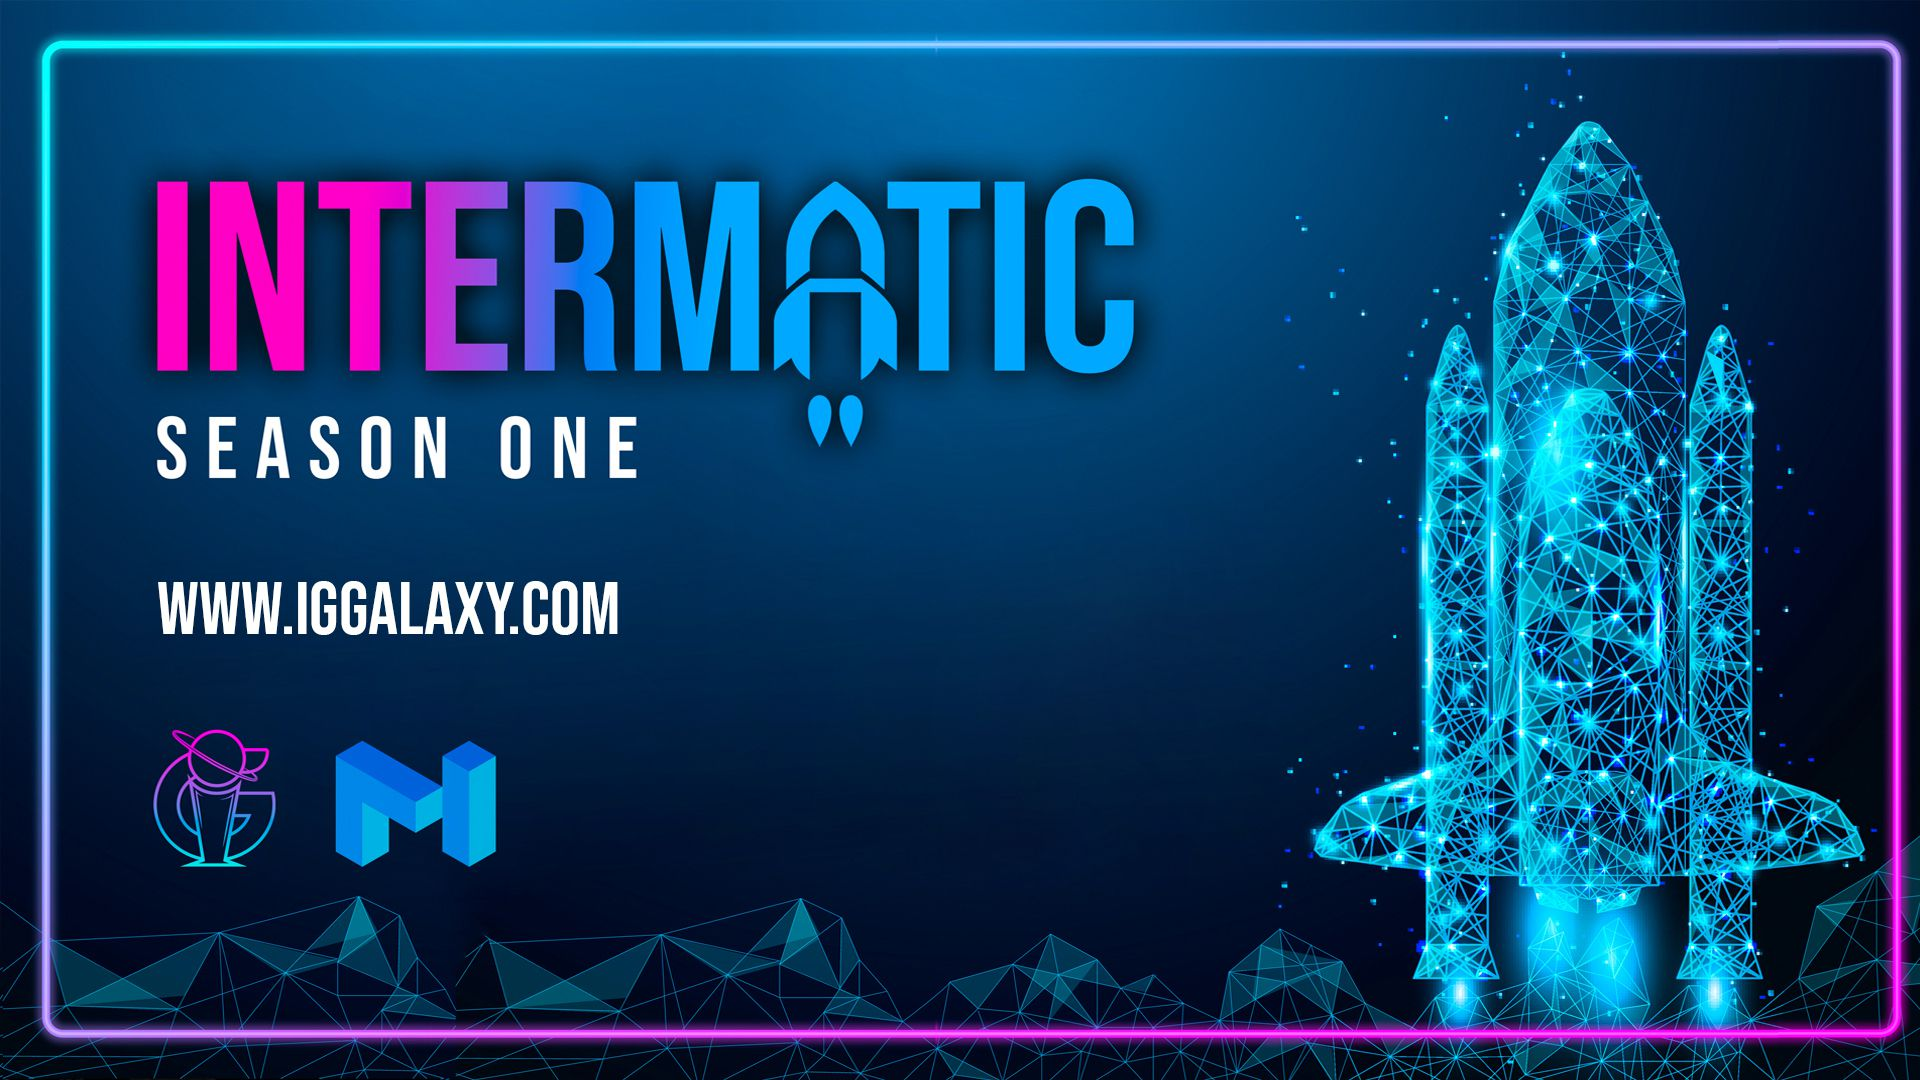 Season 1 of our InterMatic Competition Series has brought in over 6,600 gamers to IGGalaxy in six weeks!